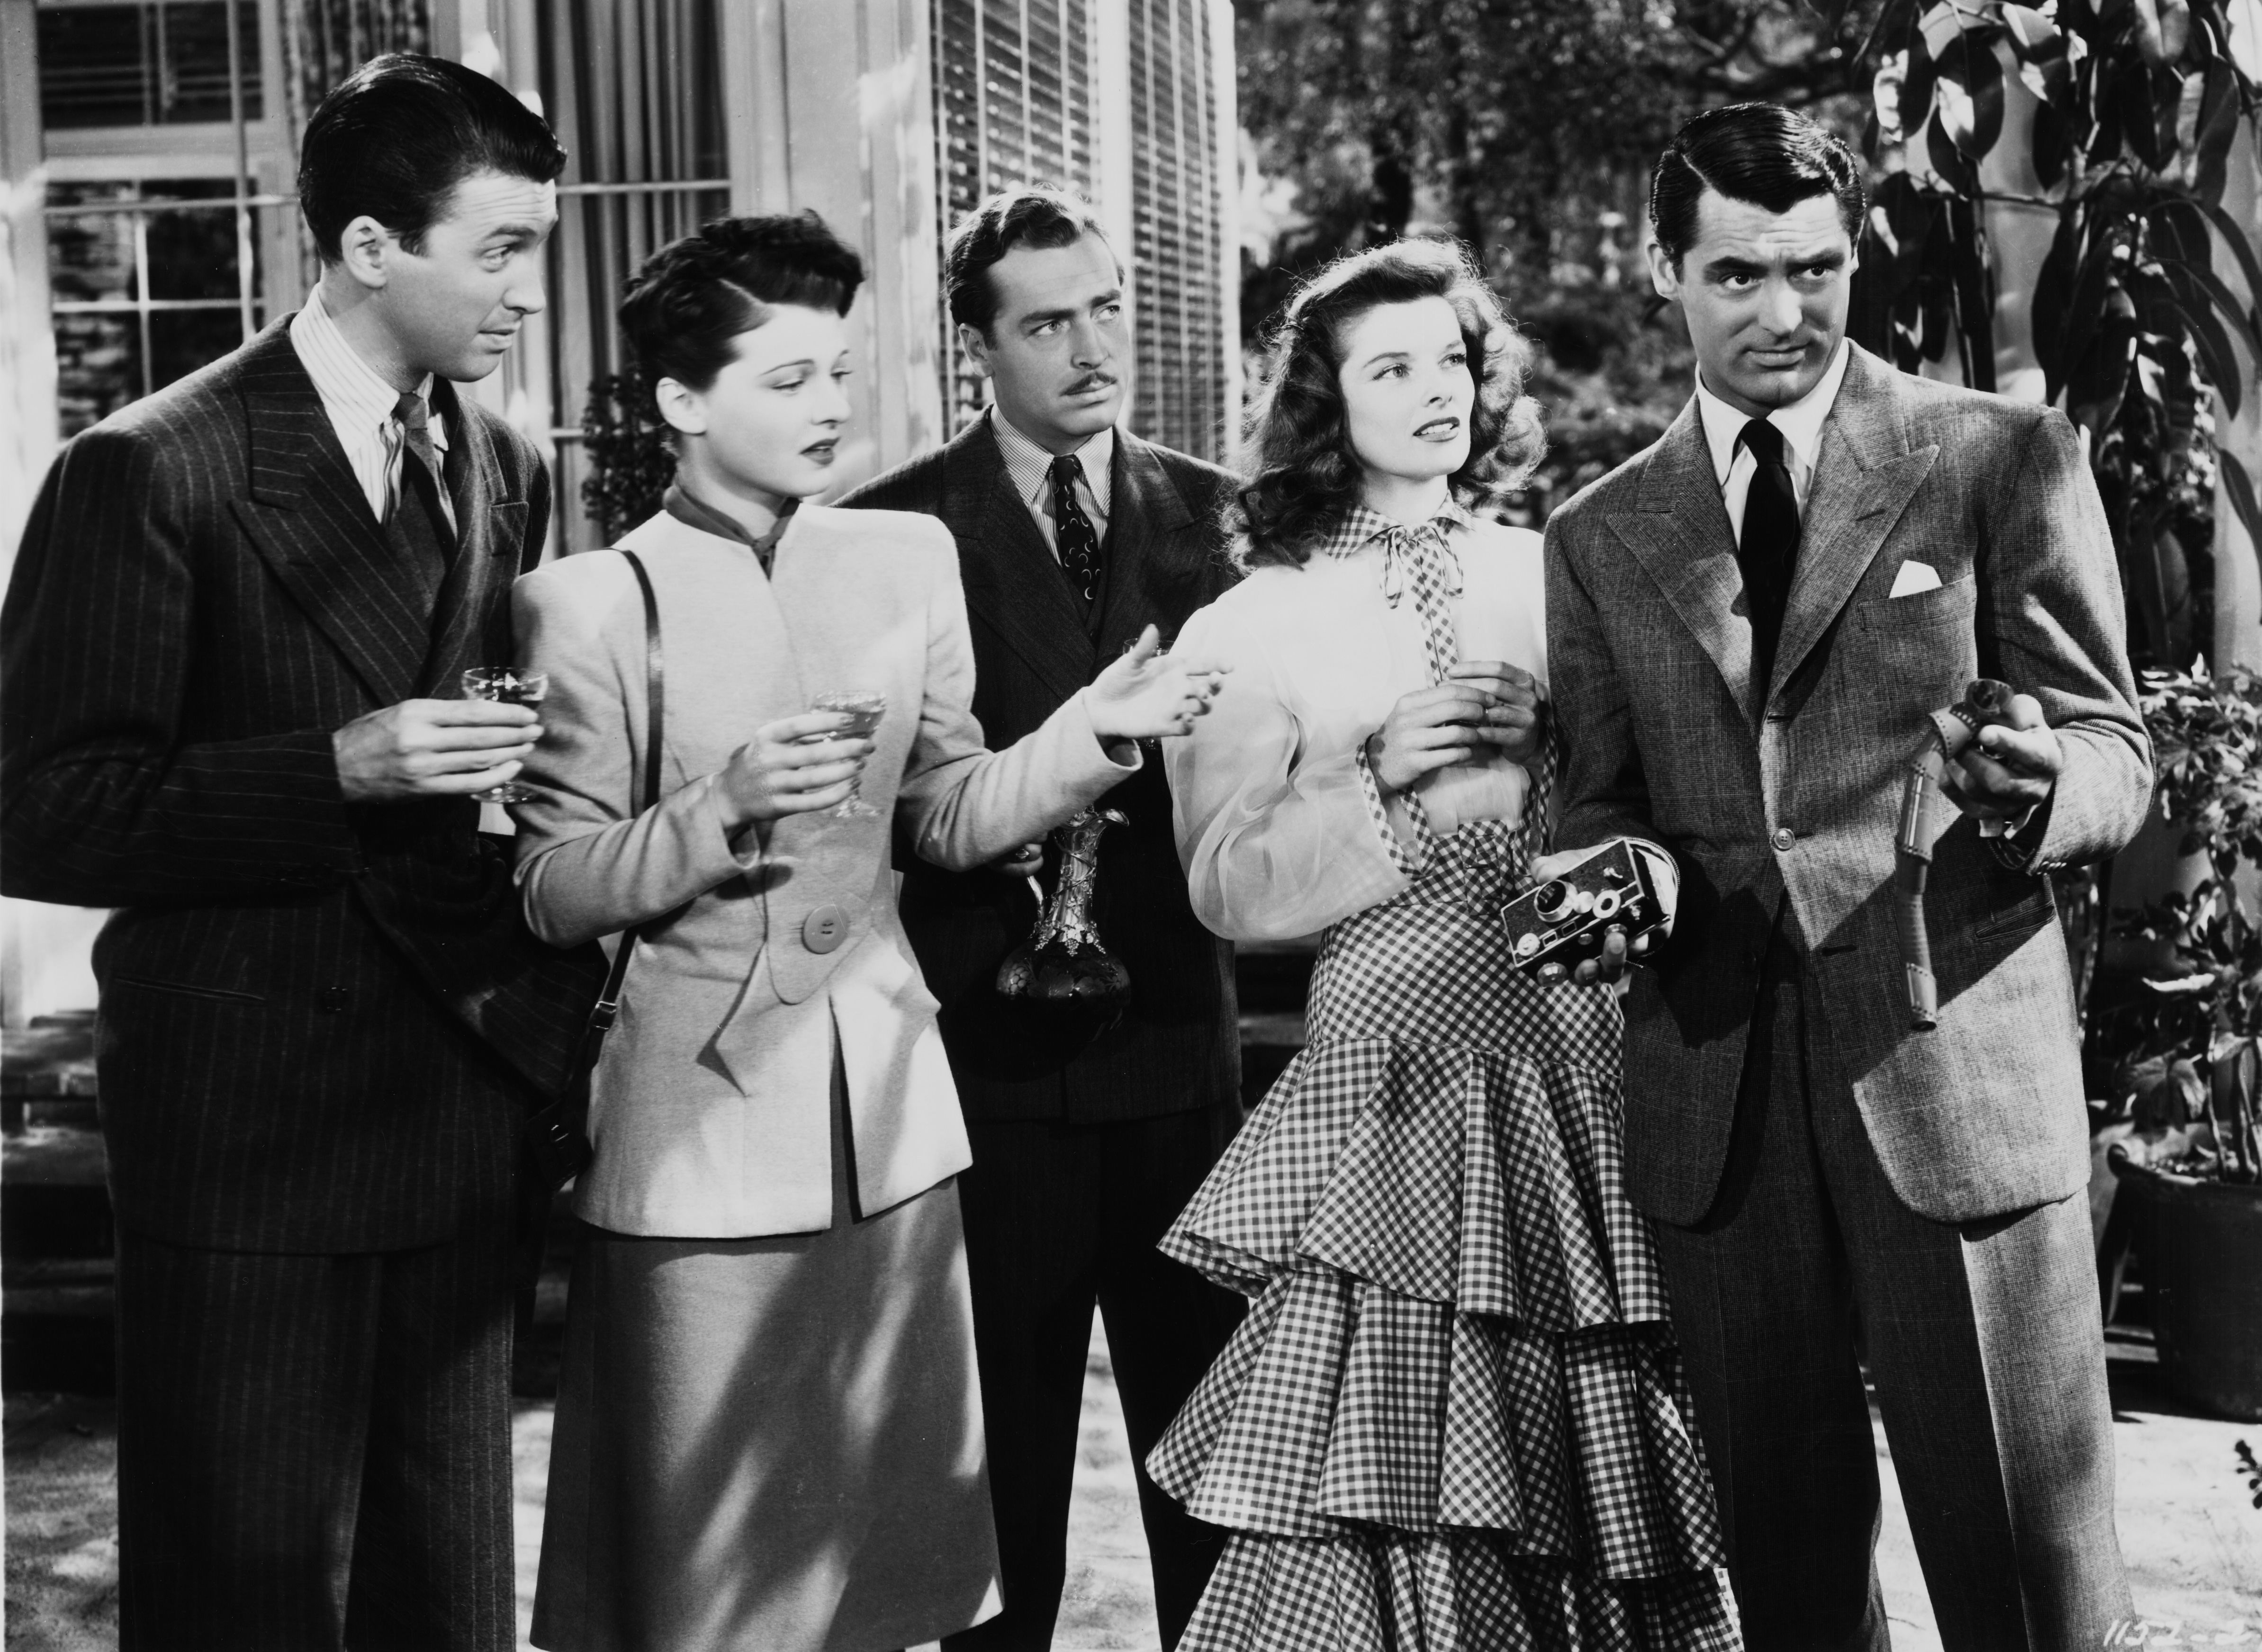 The Philadelphia Story ©1940 ©2018 All Rights Reserved. Courtesy of Warner Bros. Home Entertainment Inc.